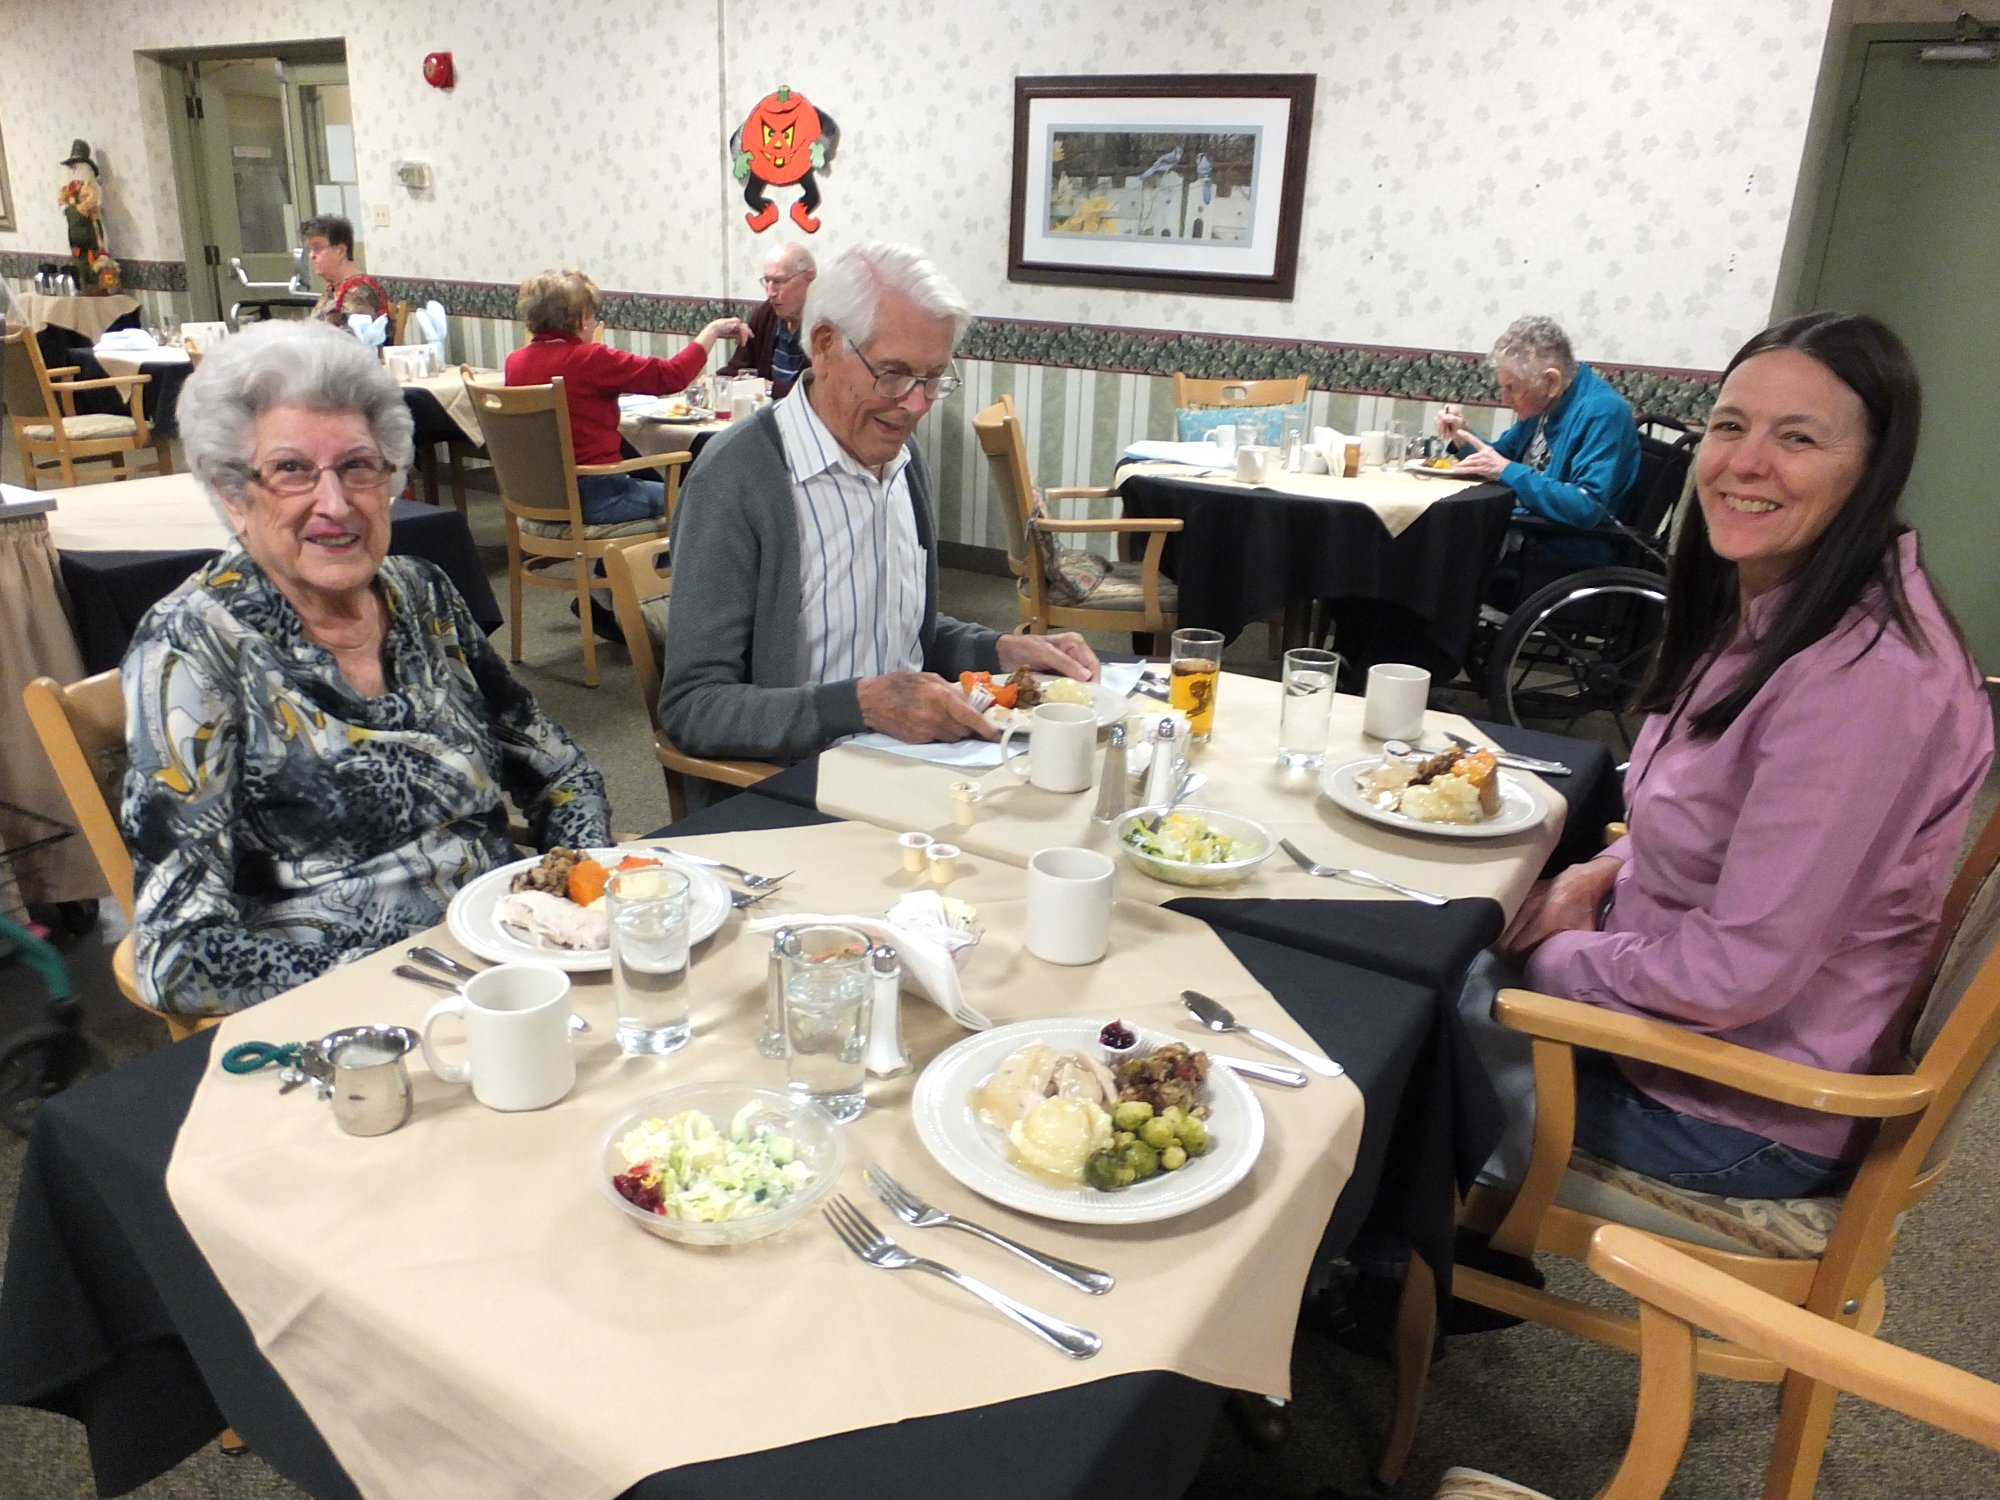 Thanksgiving Dinner at St. Charles Village 2 Nov 2014